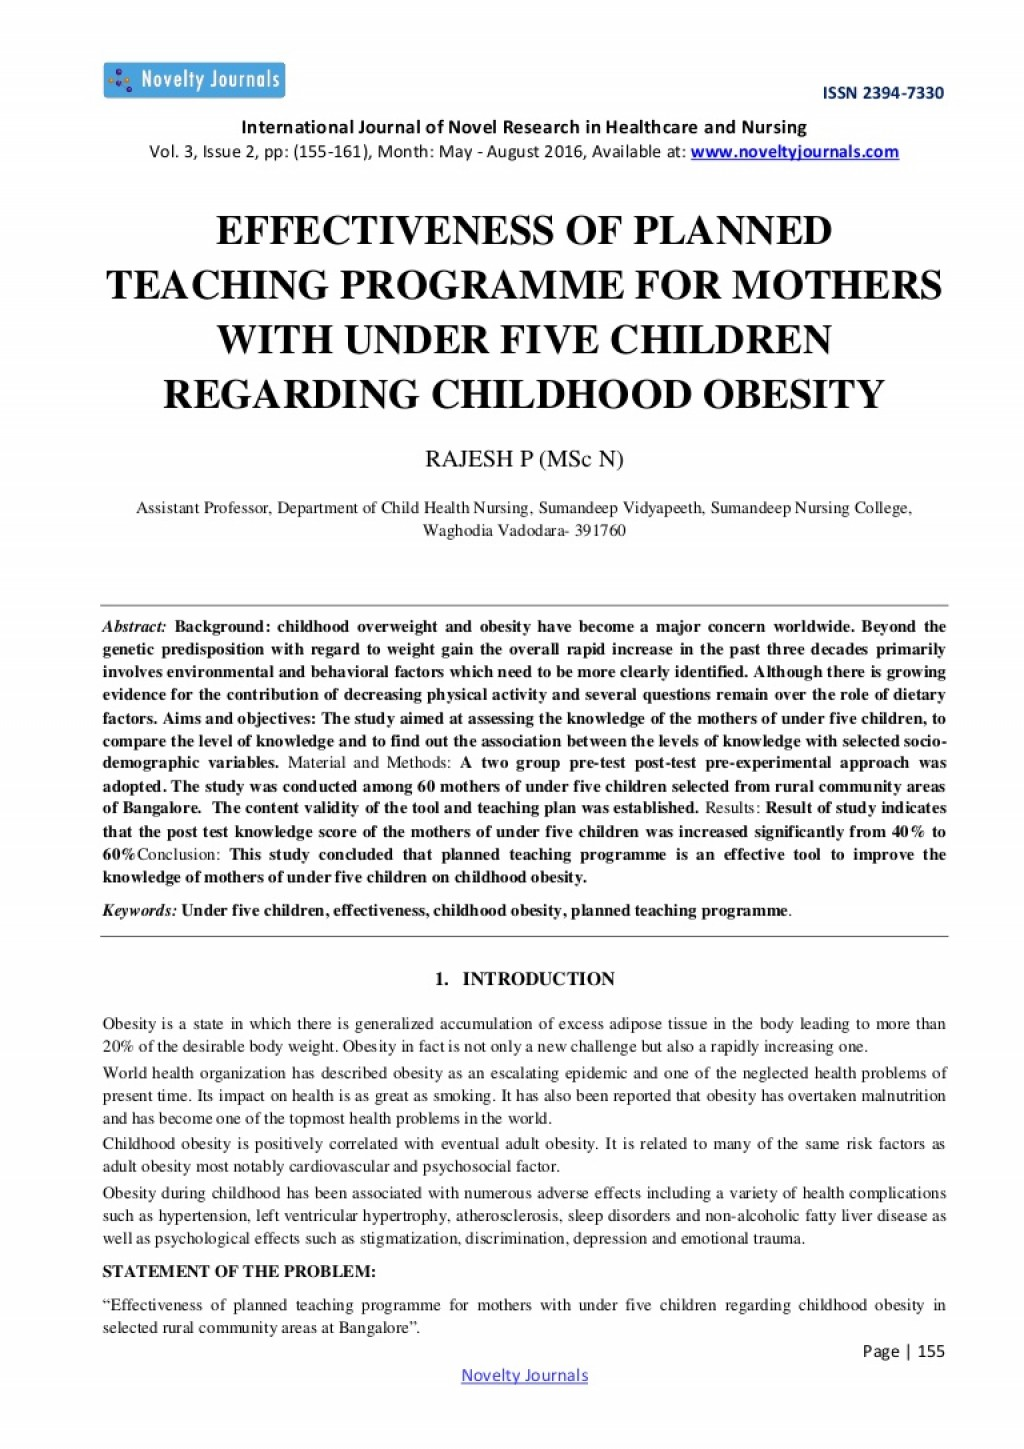 005 Nursing Research Articles On Childhood Obesity Paper Effectivenessofplanned Thumbnail Stirring Large